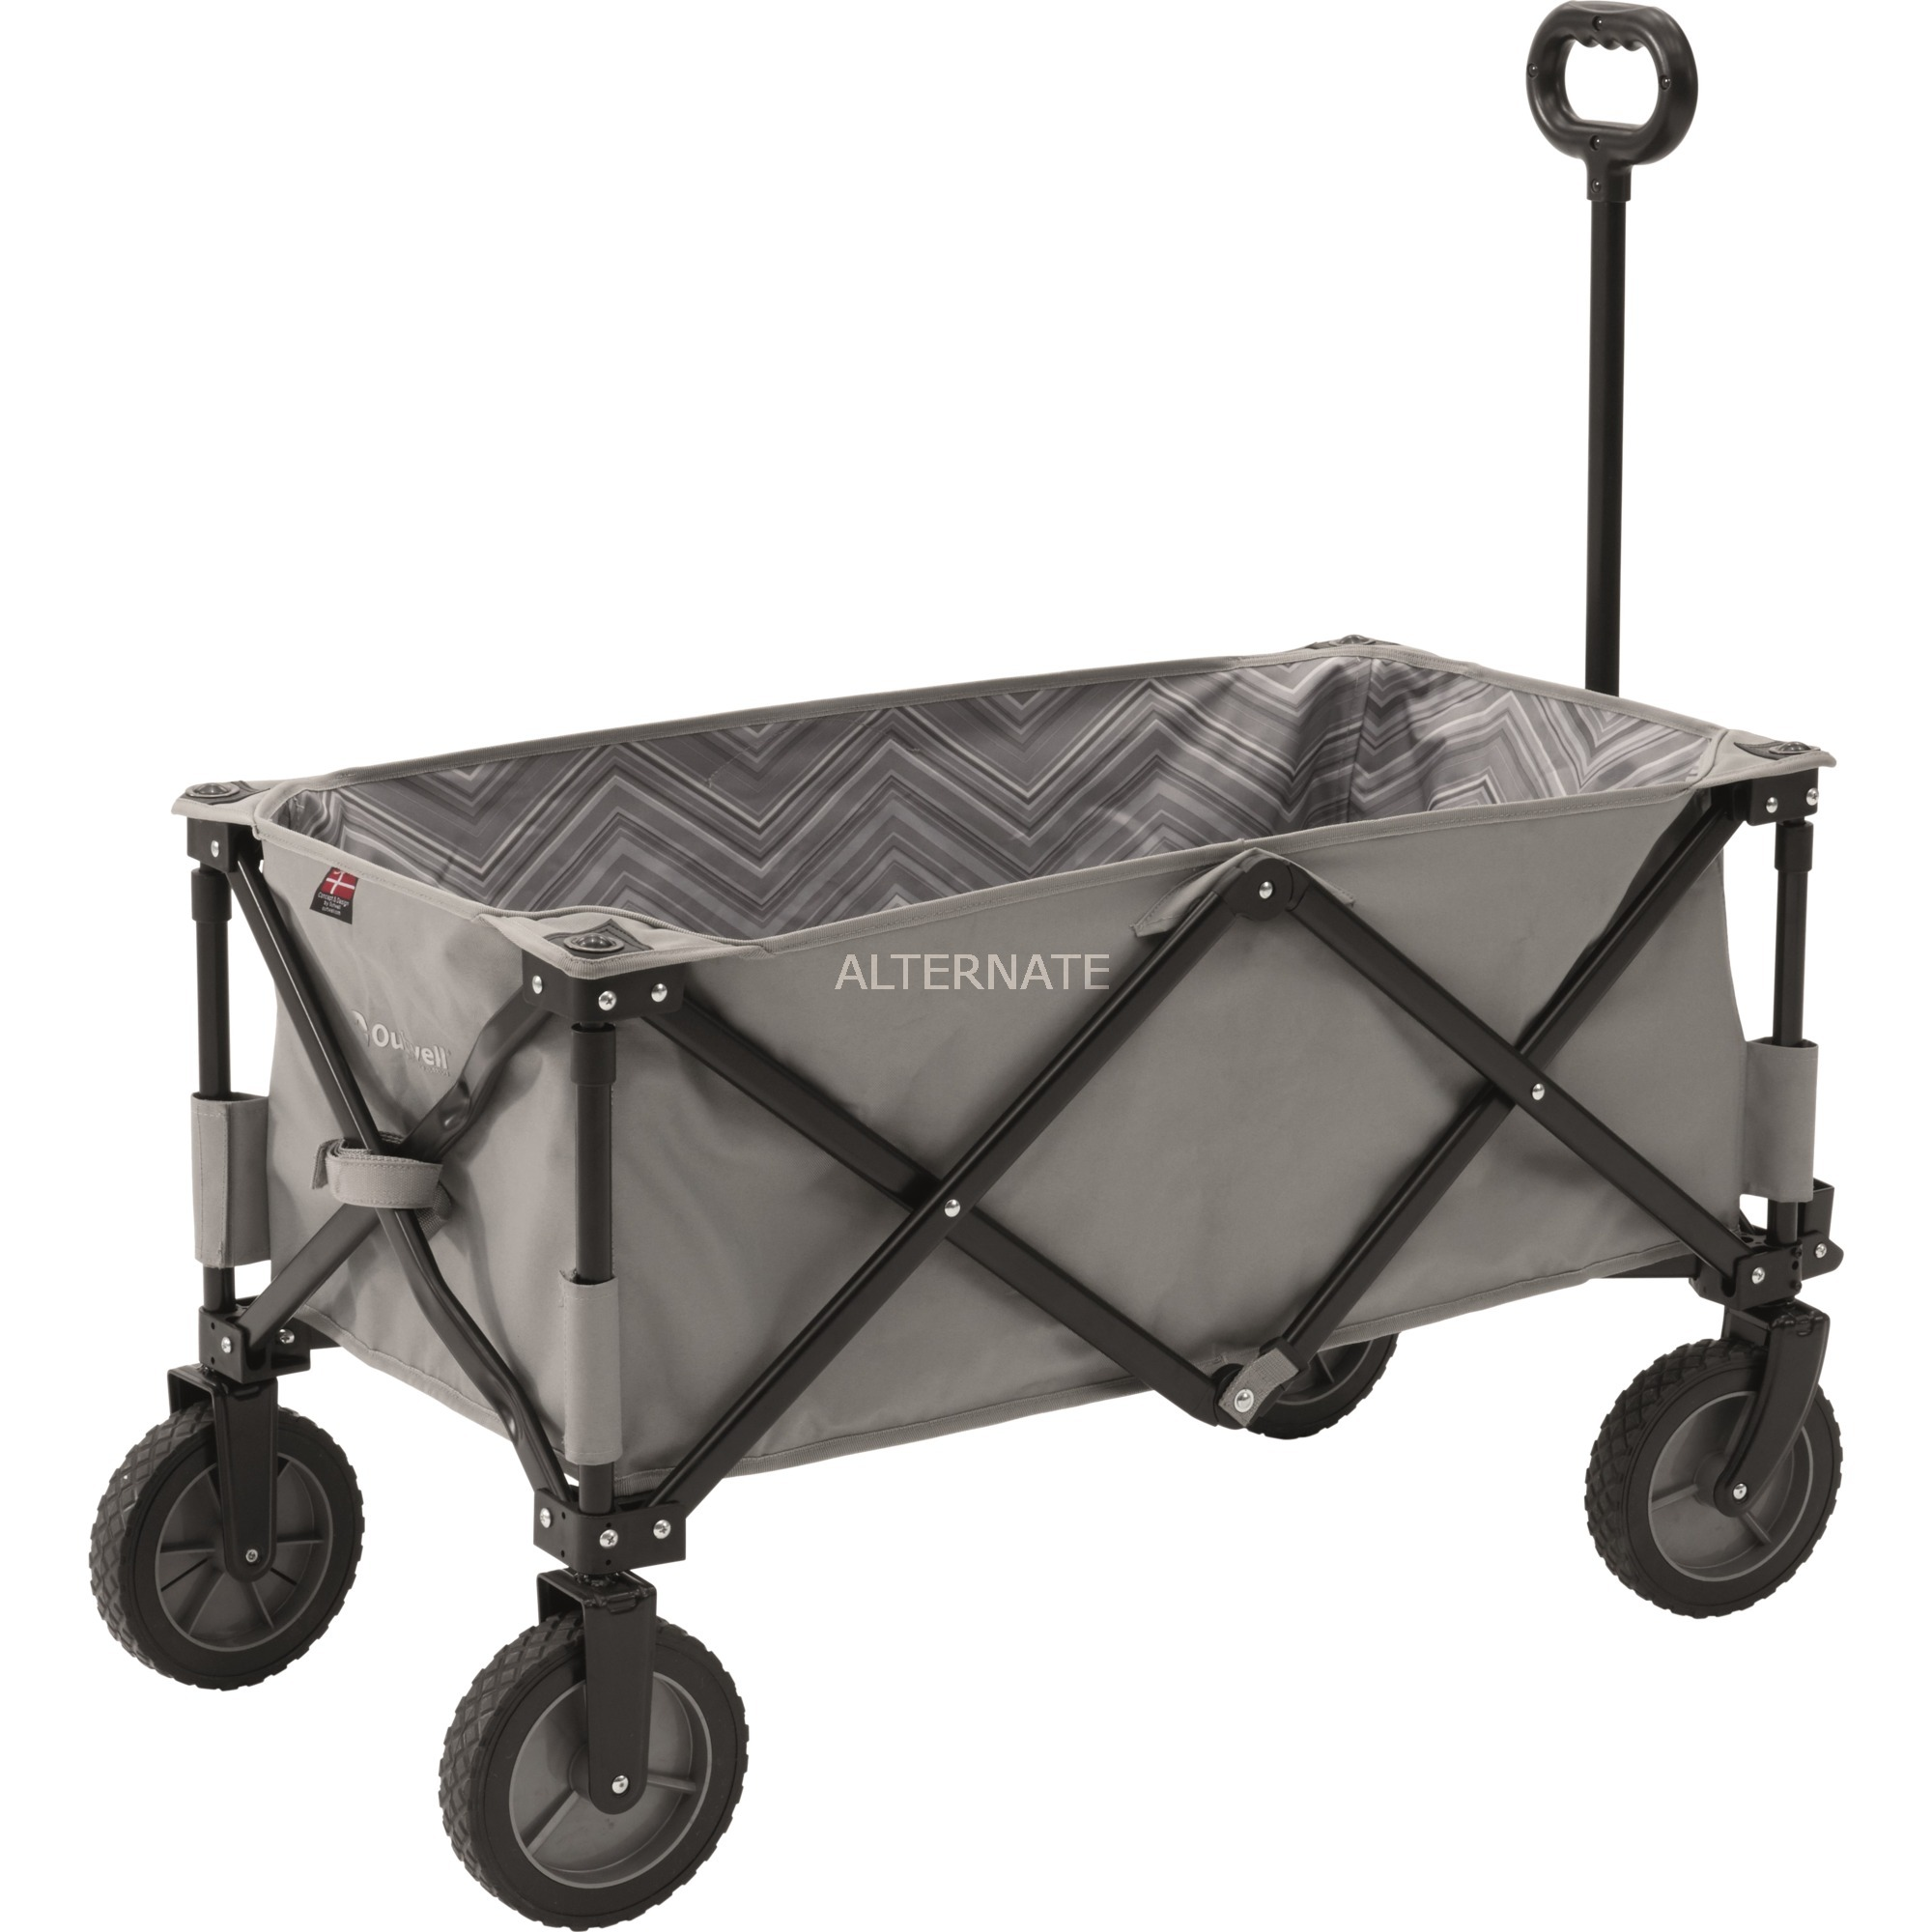 470228 Gris carritos de camping, Hand trolley